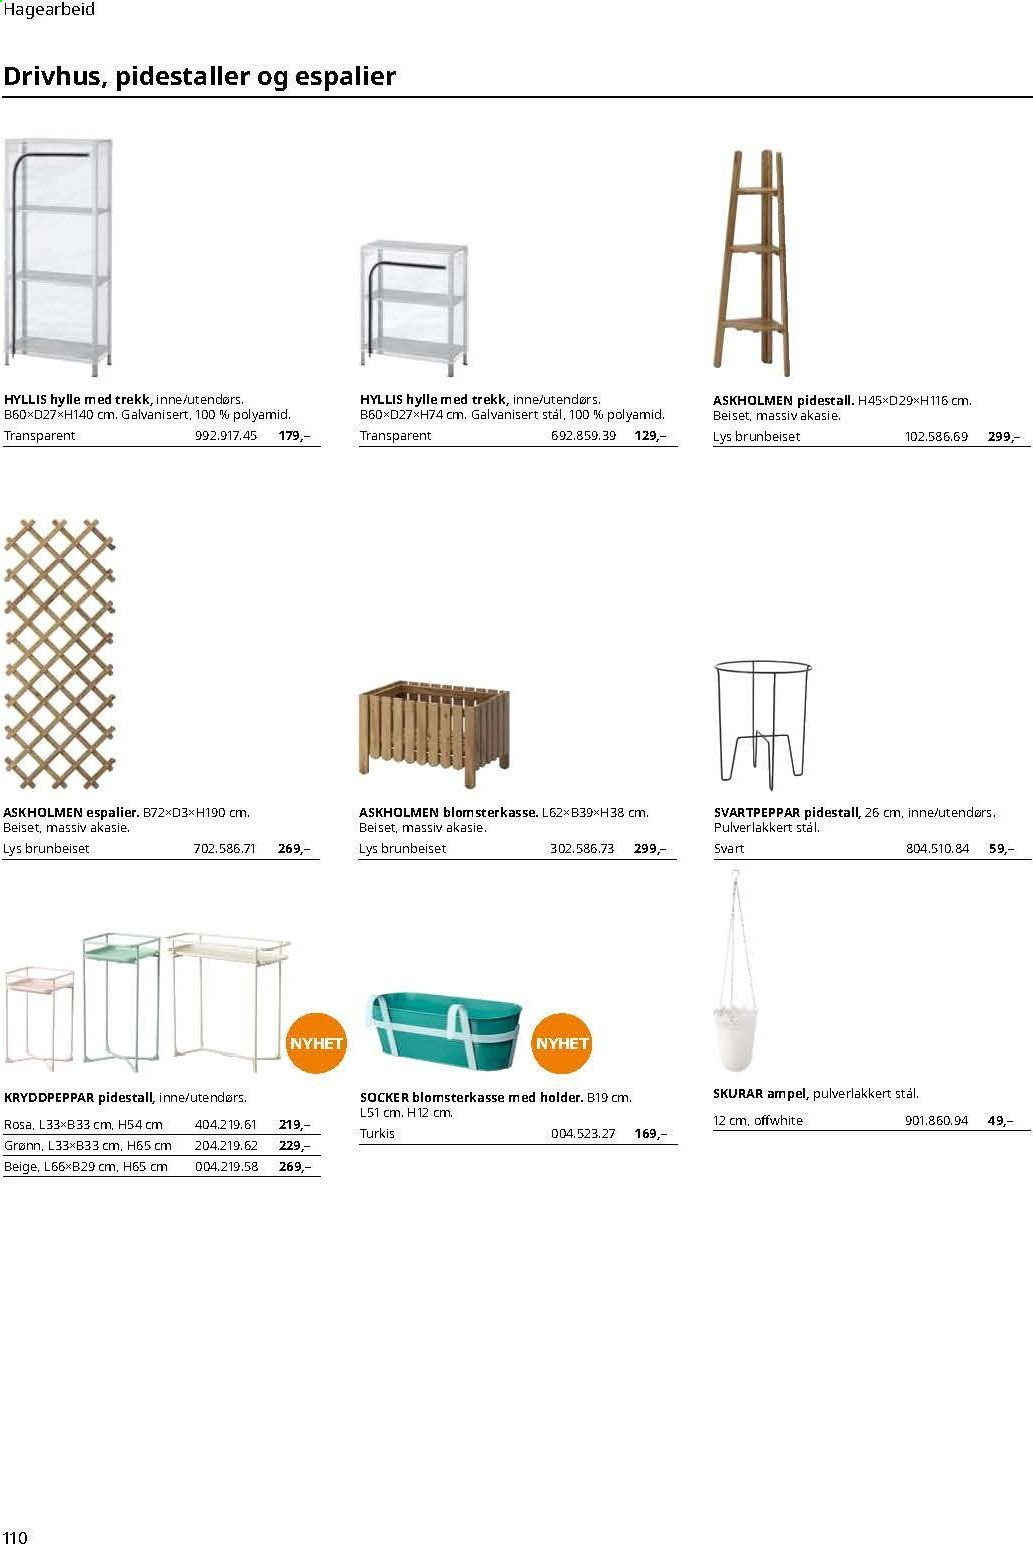 Kundeavis IKEA. Side 110.